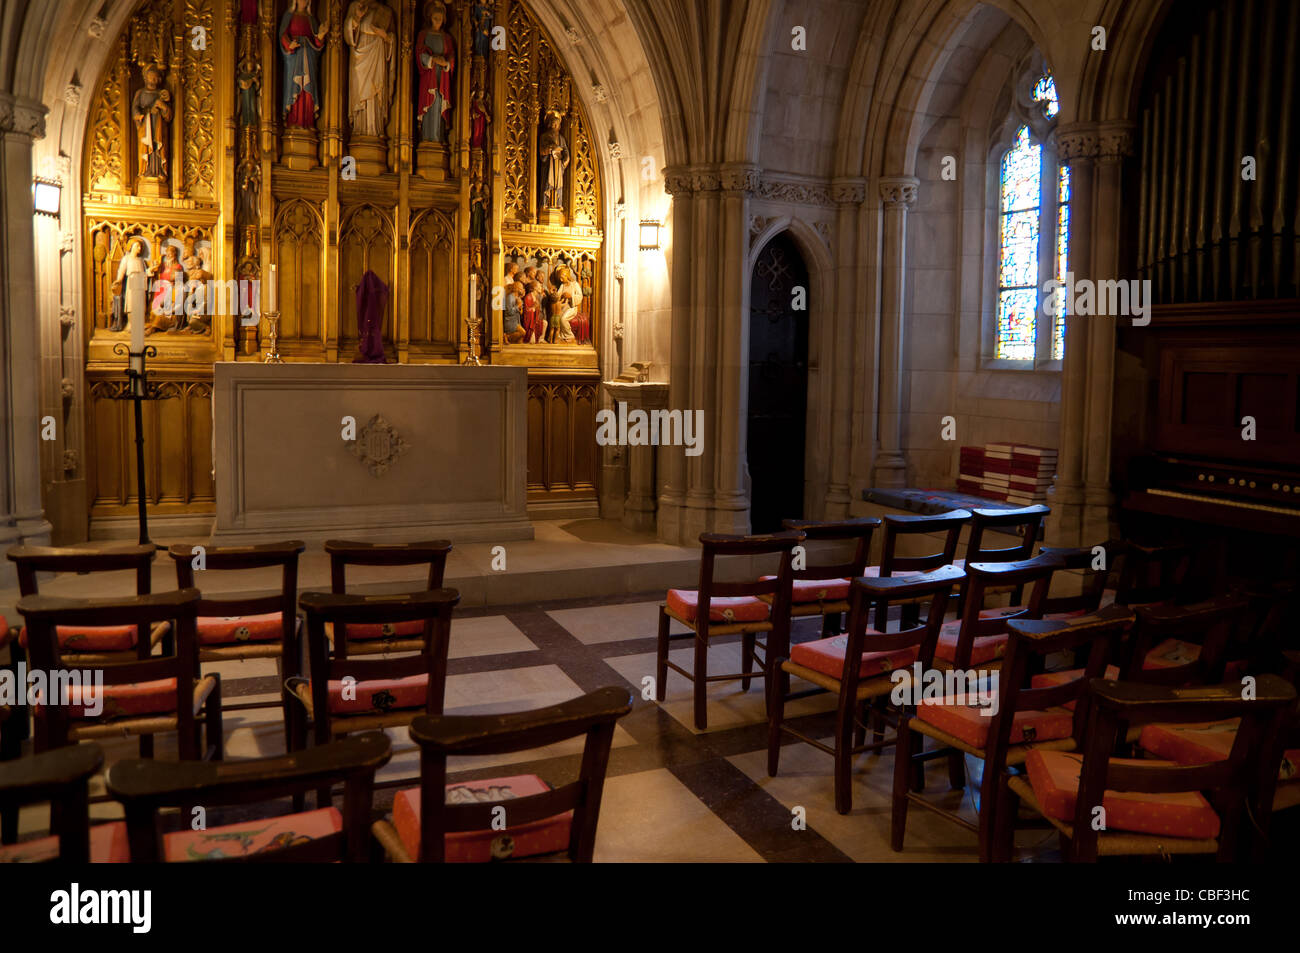 Children's Chapel in National Cathedral, Washington DC Stock Photo